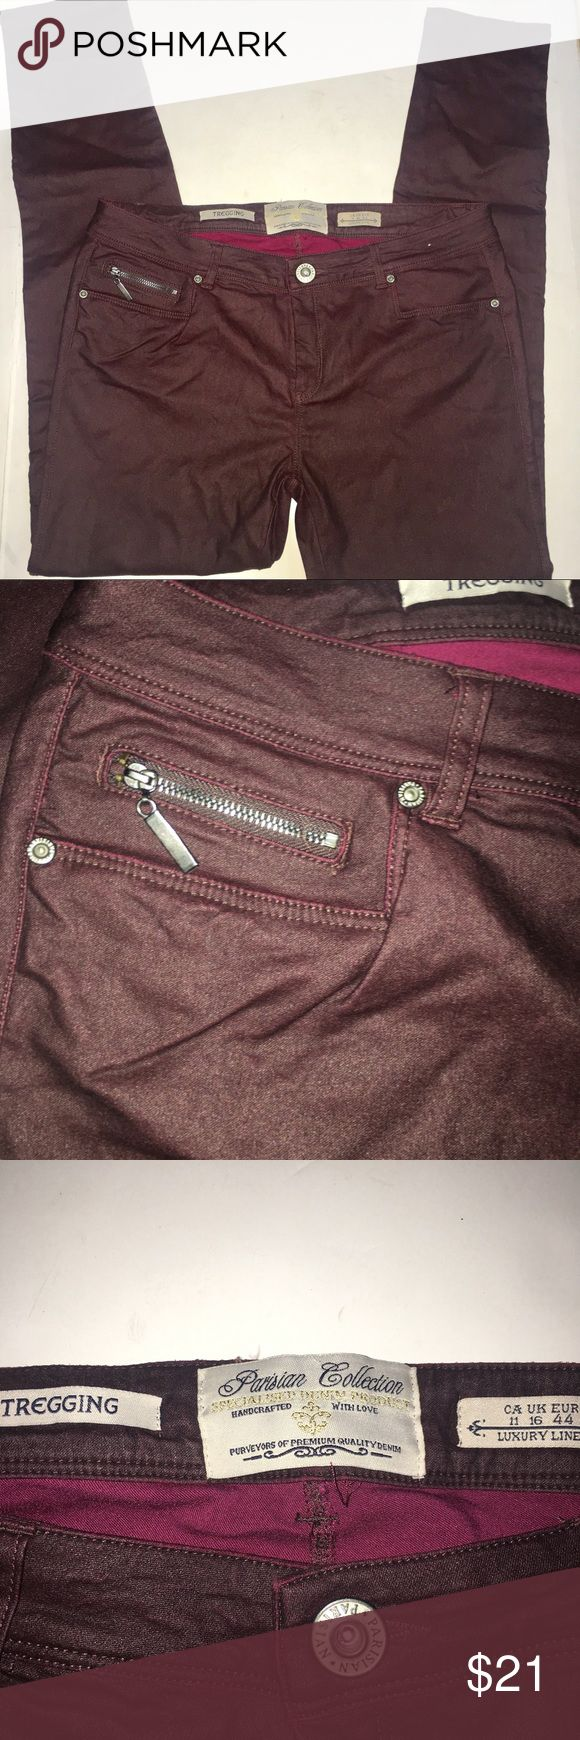 """Parisian Collection treggings Super stretchy. Very smooth kind of has a leather look. The inside is cloth lined. 2 pockets in the front with one small zippered pocket. Zippered button closure. Back has 2 zippered pockets. Dark wine color. In excellent condition! 32"""" waist x 30"""" inseam 9"""" rise   UK Size 16 equivalent to a US size 12 Parisian Collection Pants Leggings"""